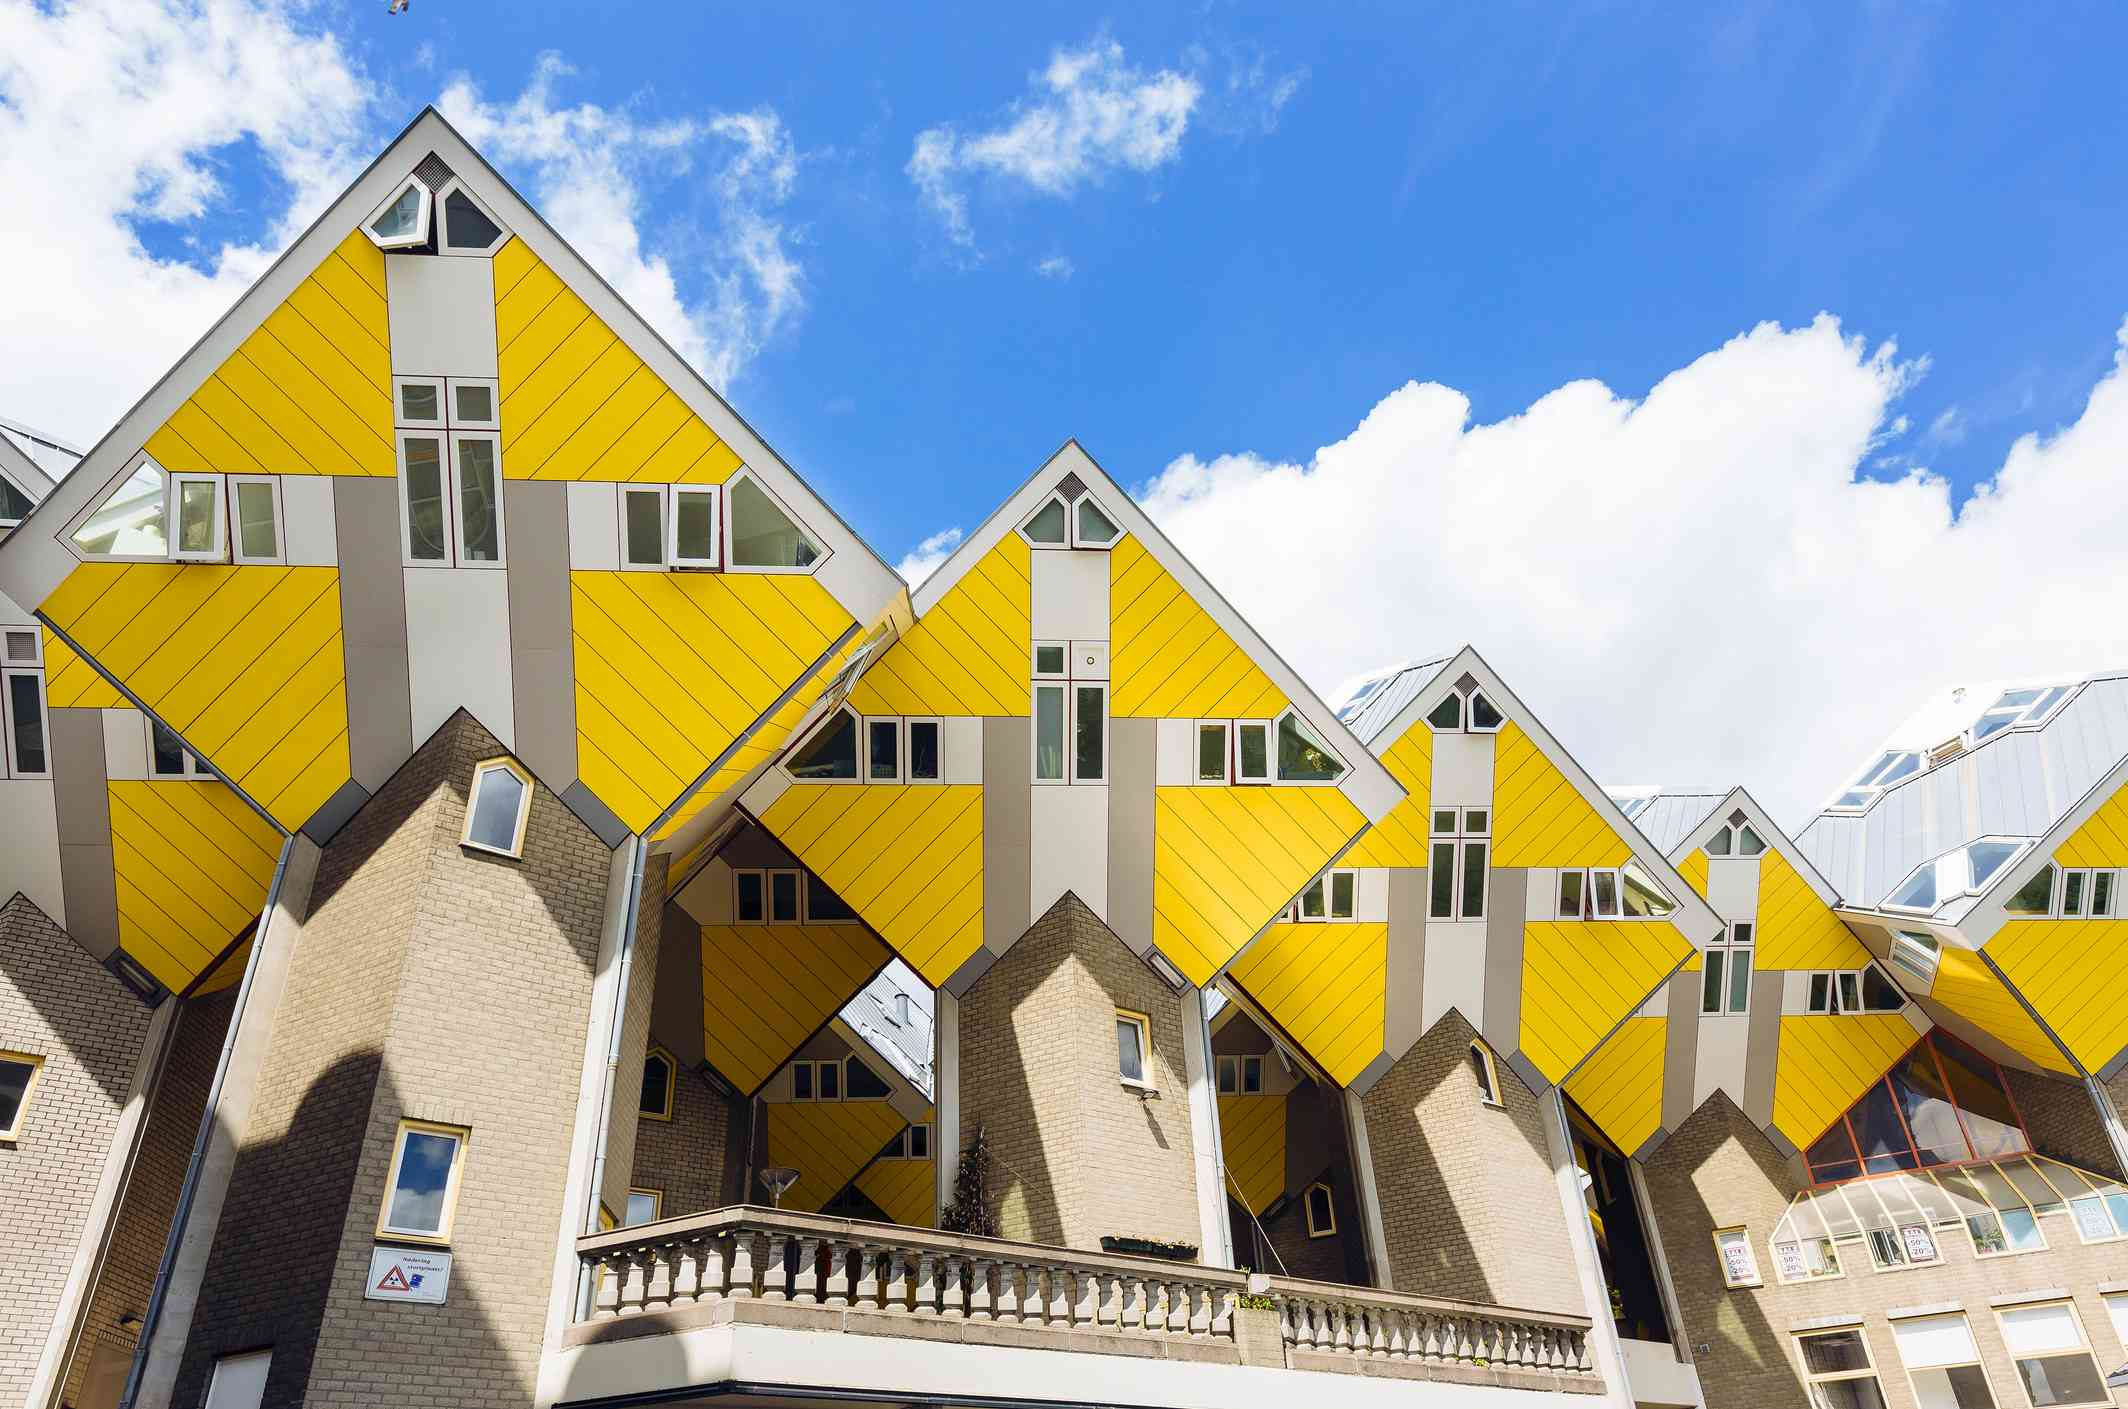 Yellow cubic houses in Rotterdam, Netherlands